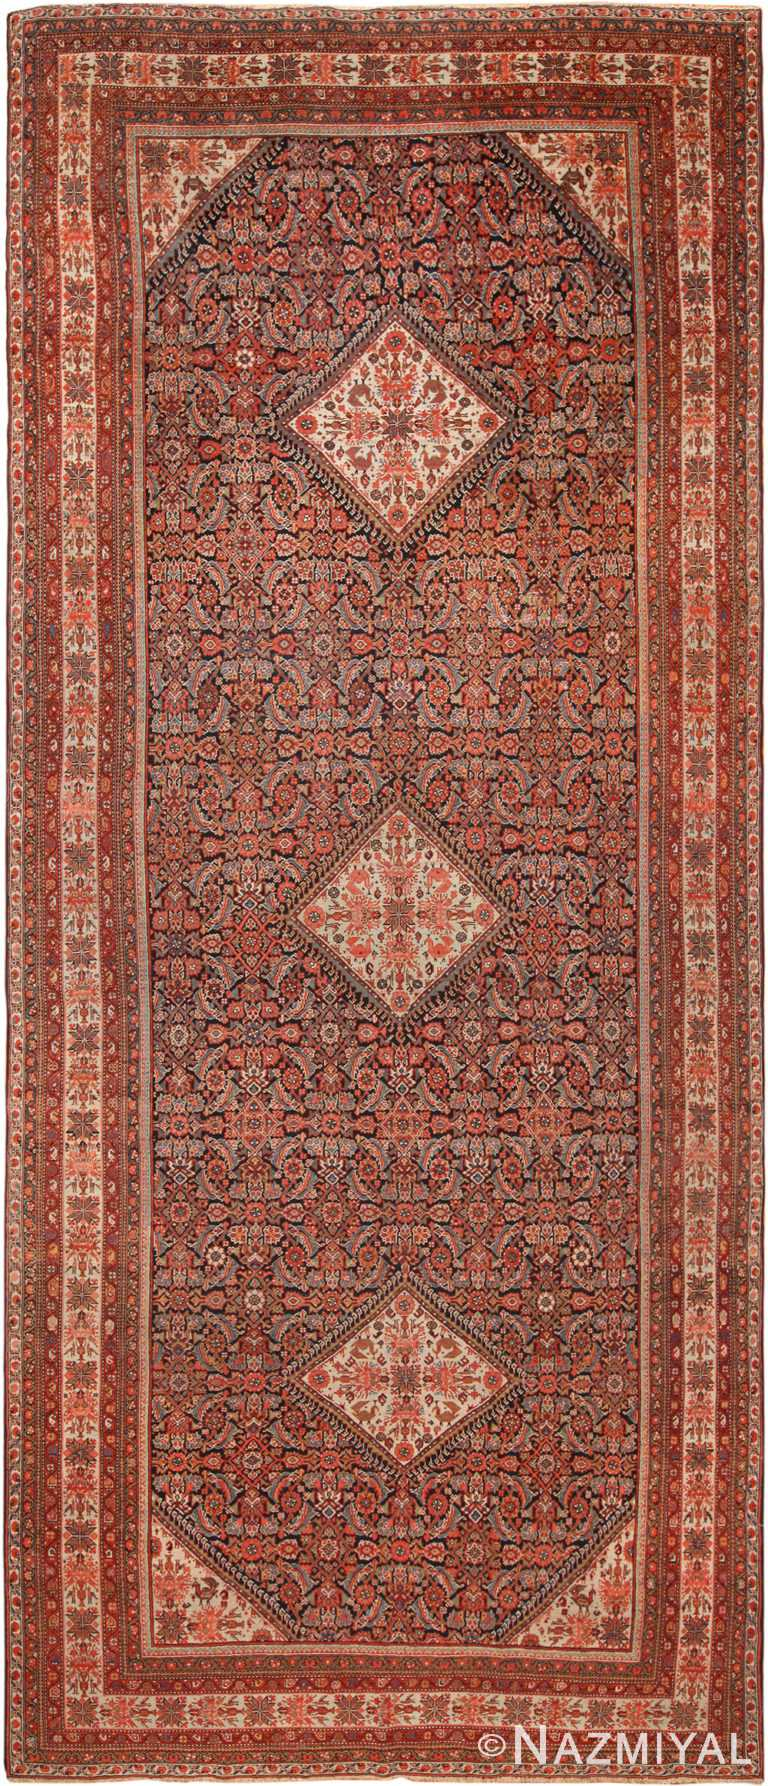 Antique Floral Persian Malayer Runner Rug 70573 by Nazmiyal NYC